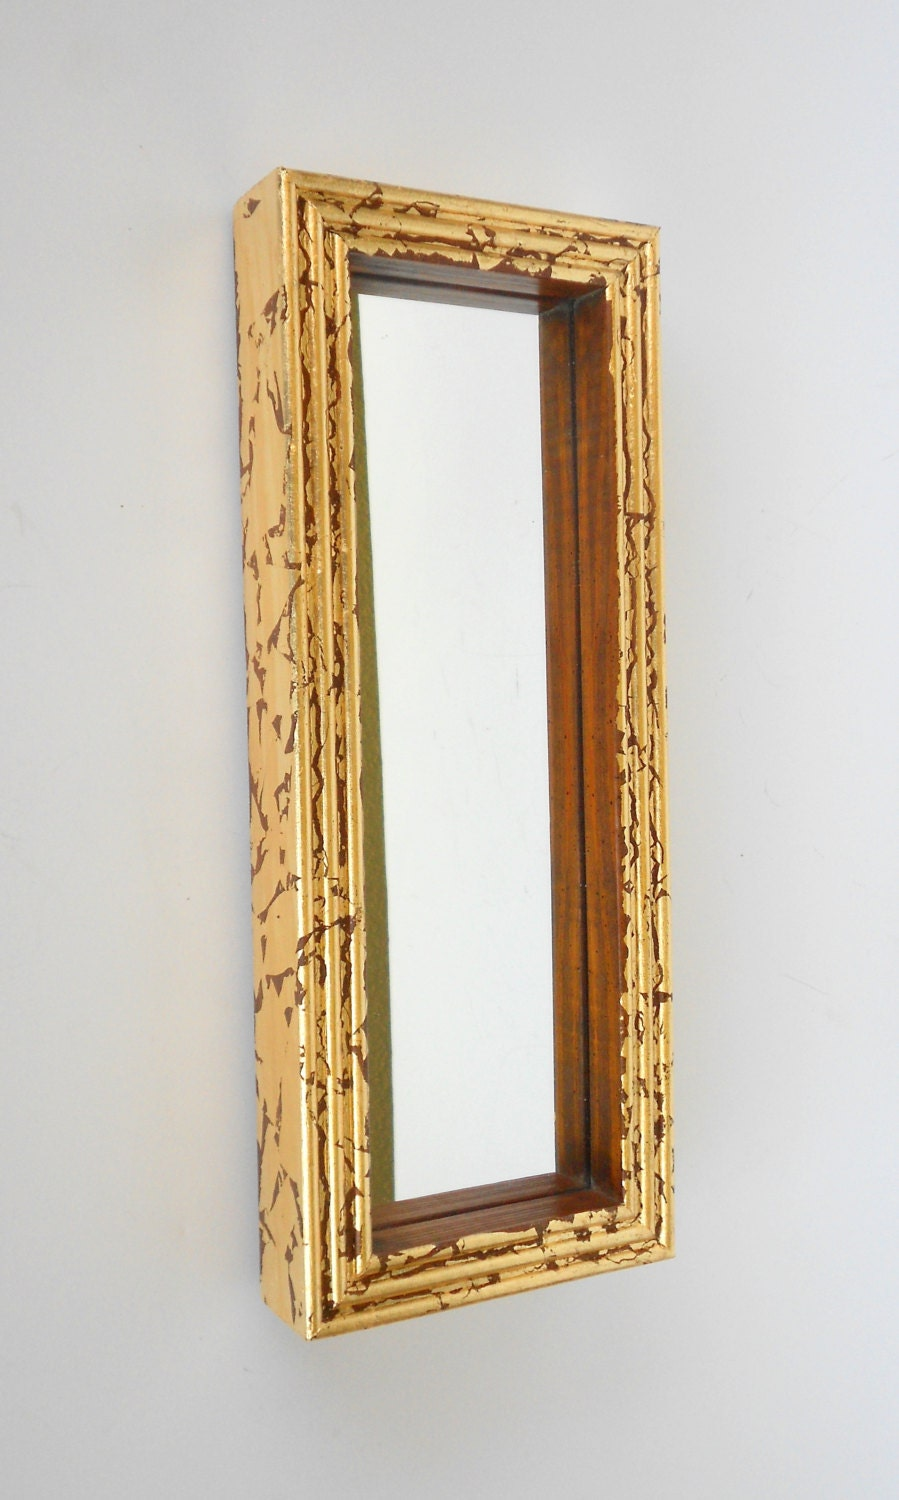 X5 mirror narrow mirror decorative wall mirror for Narrow mirror